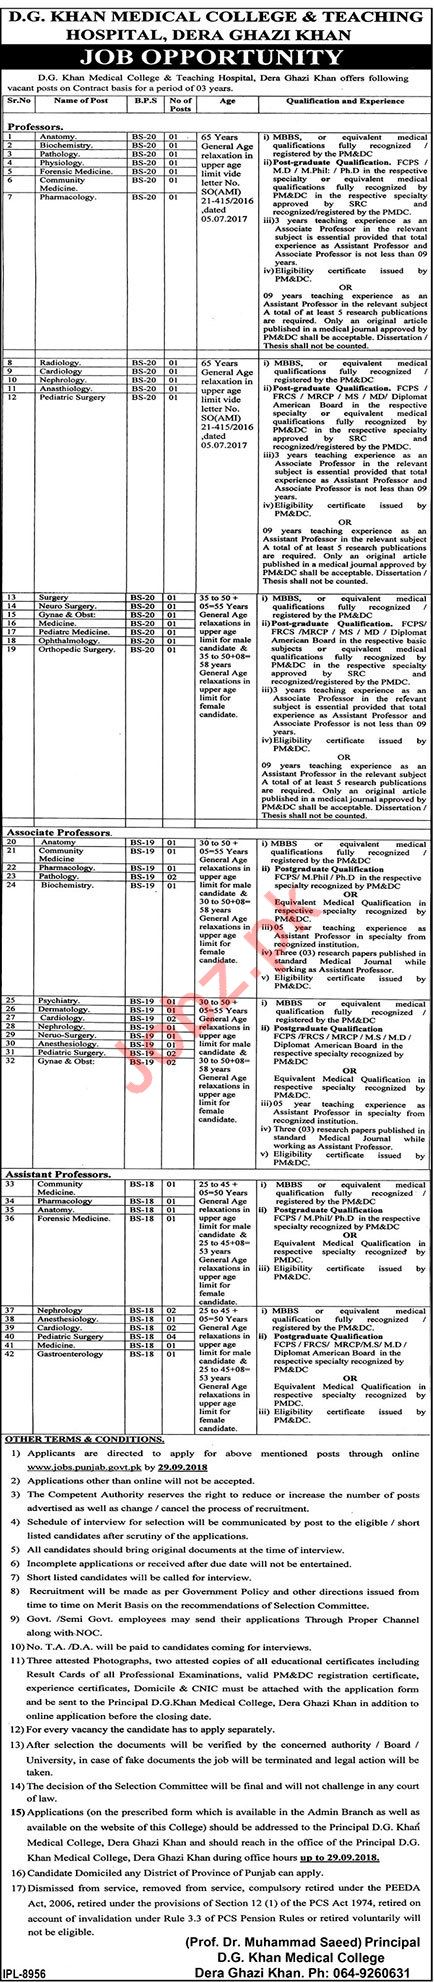 DG Khan Medical College & Teaching Hospital Jobs